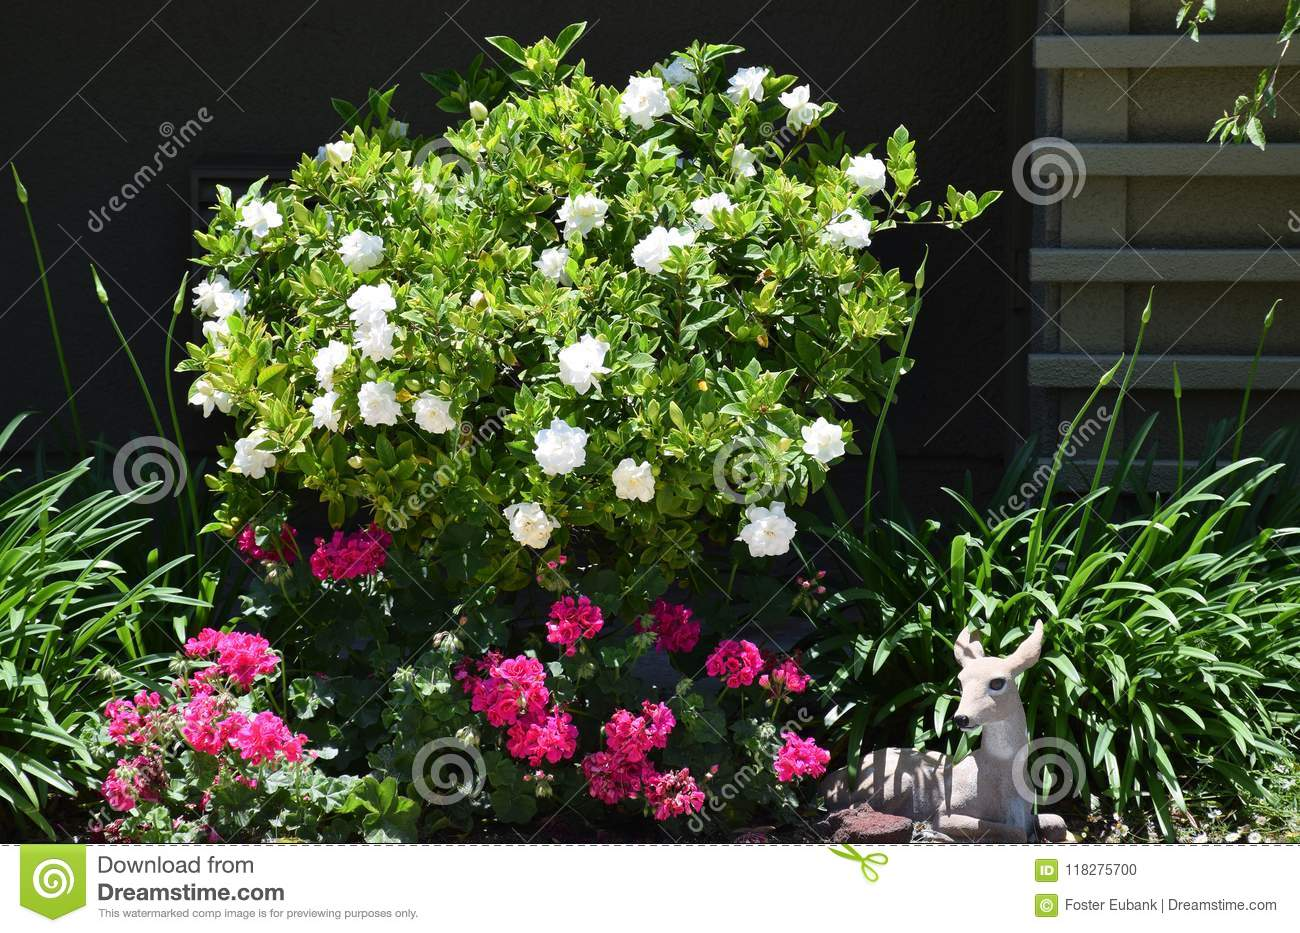 Gardenia bush in full bloom.